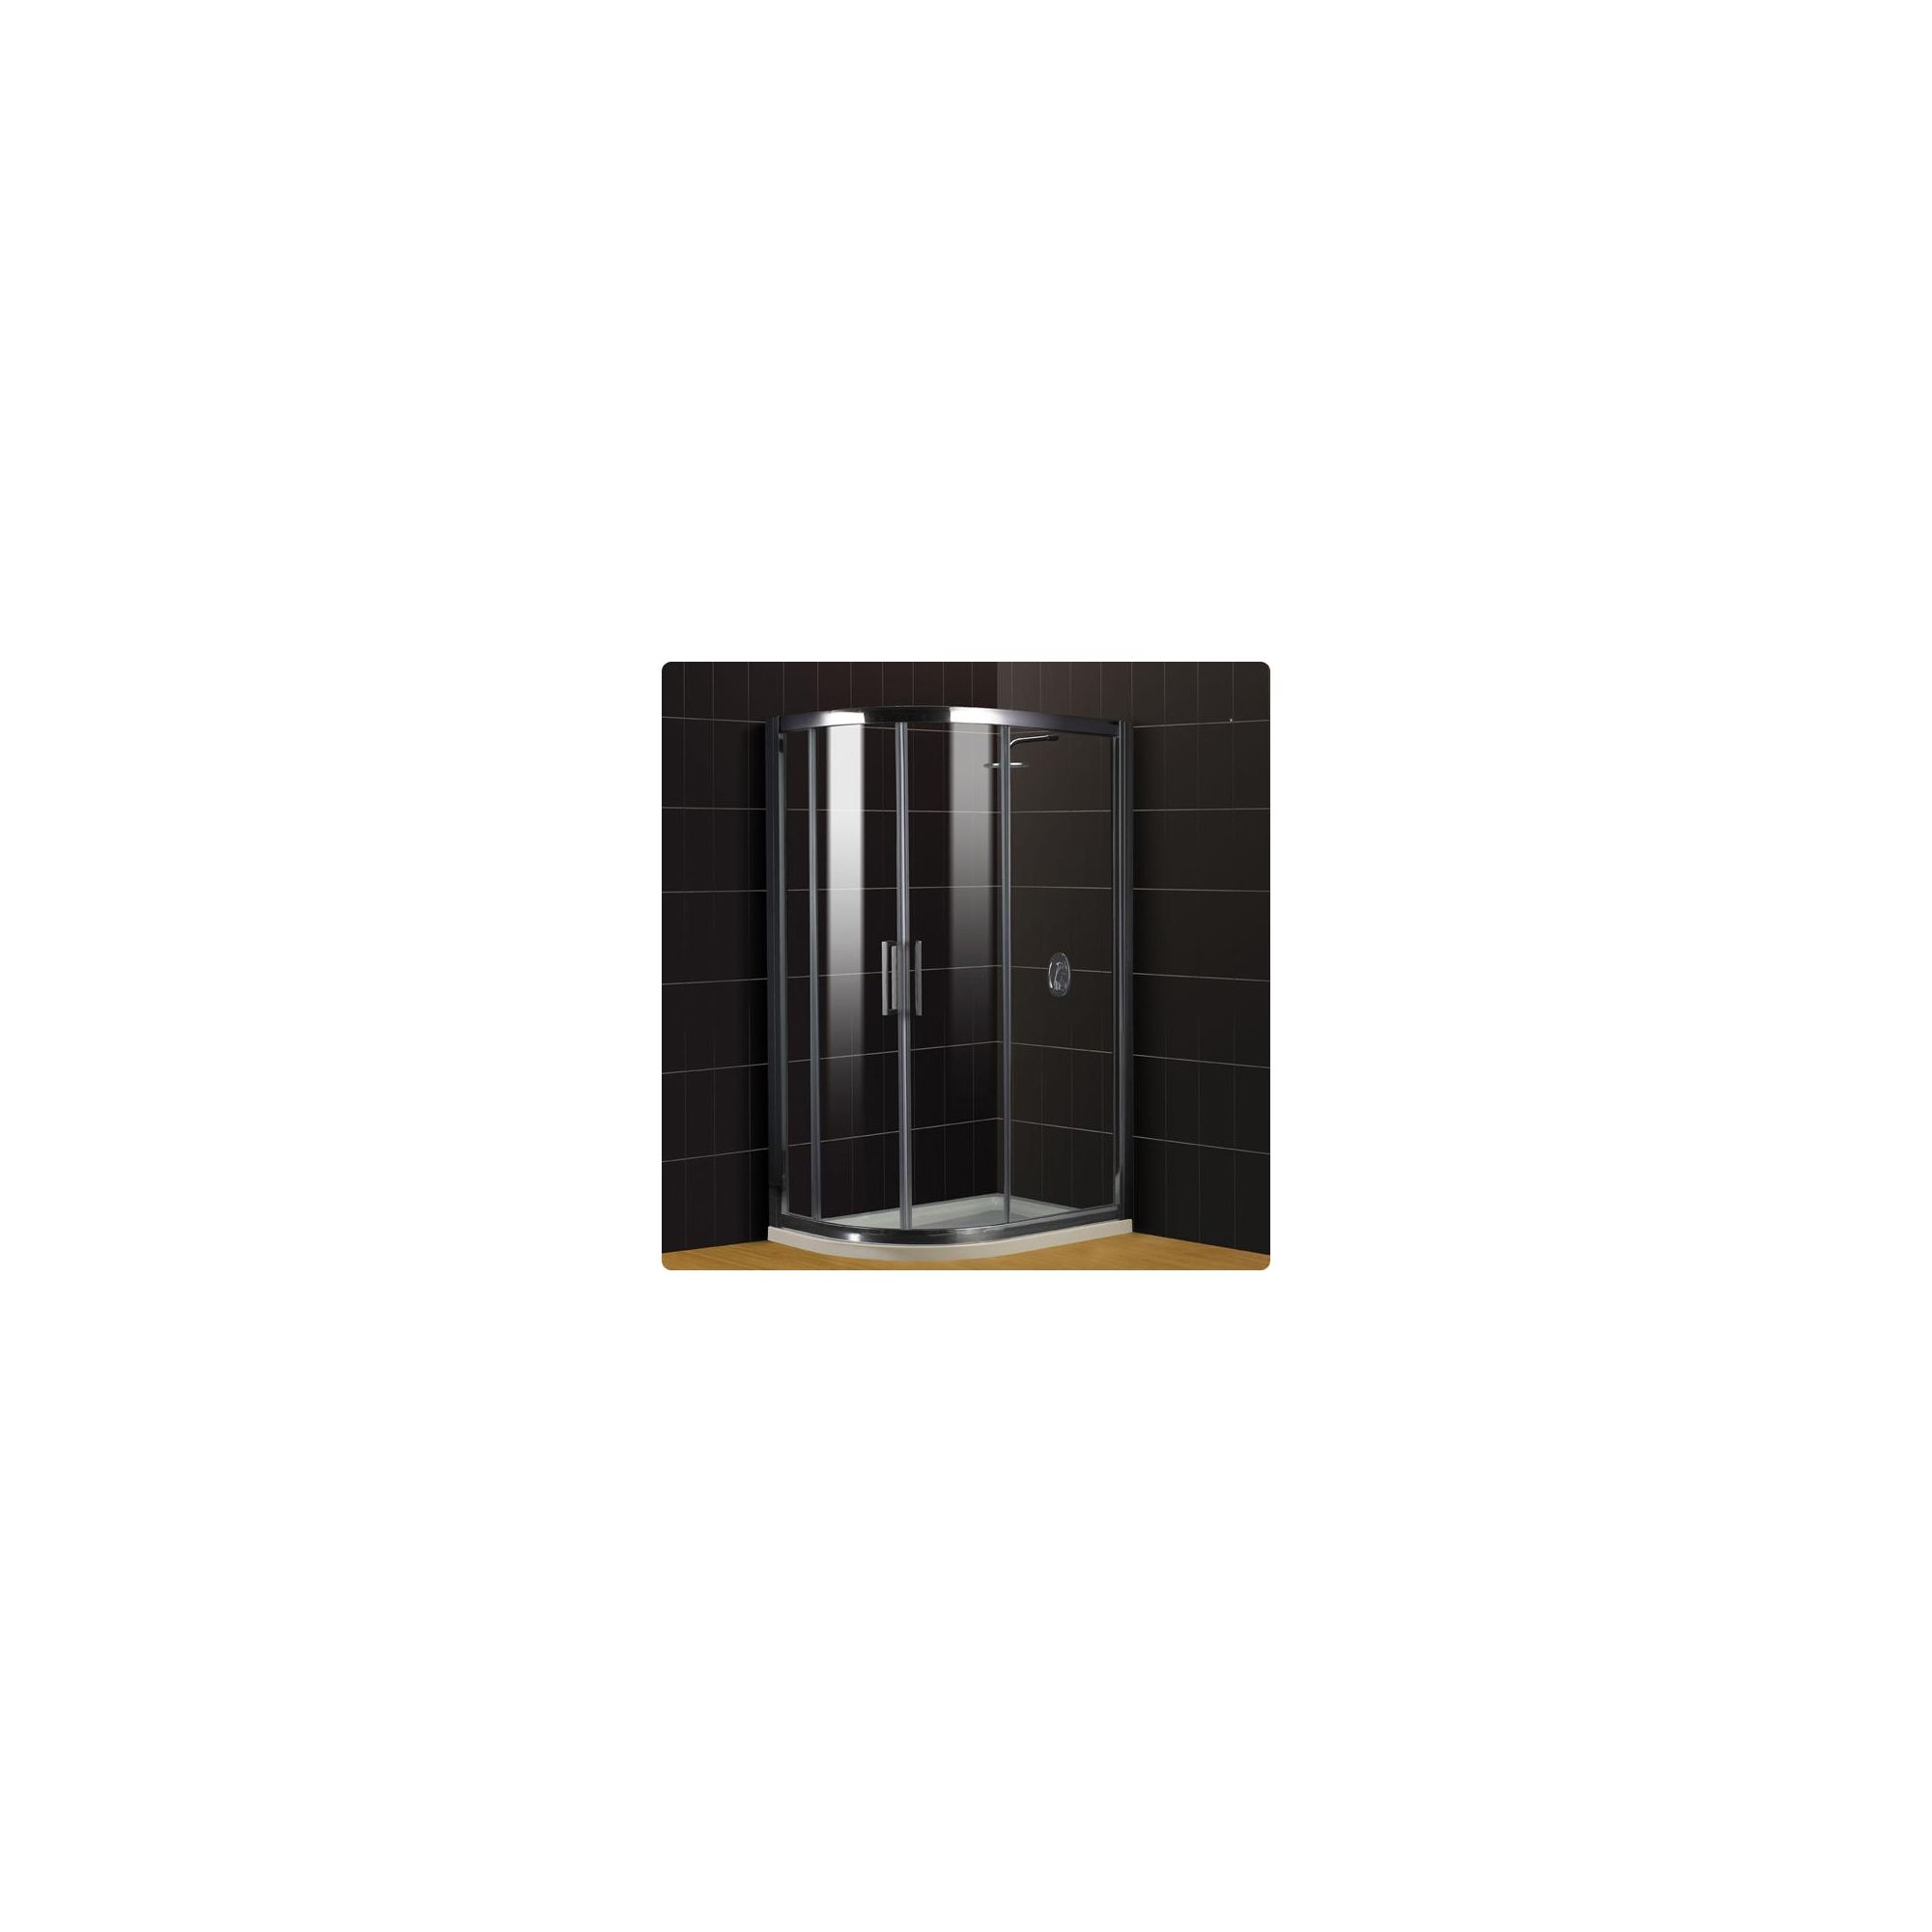 Duchy Supreme Silver Offset Quadrant Shower Enclosure (Complete with Tray) 1000mm x 800mm, 8mm Glass at Tesco Direct